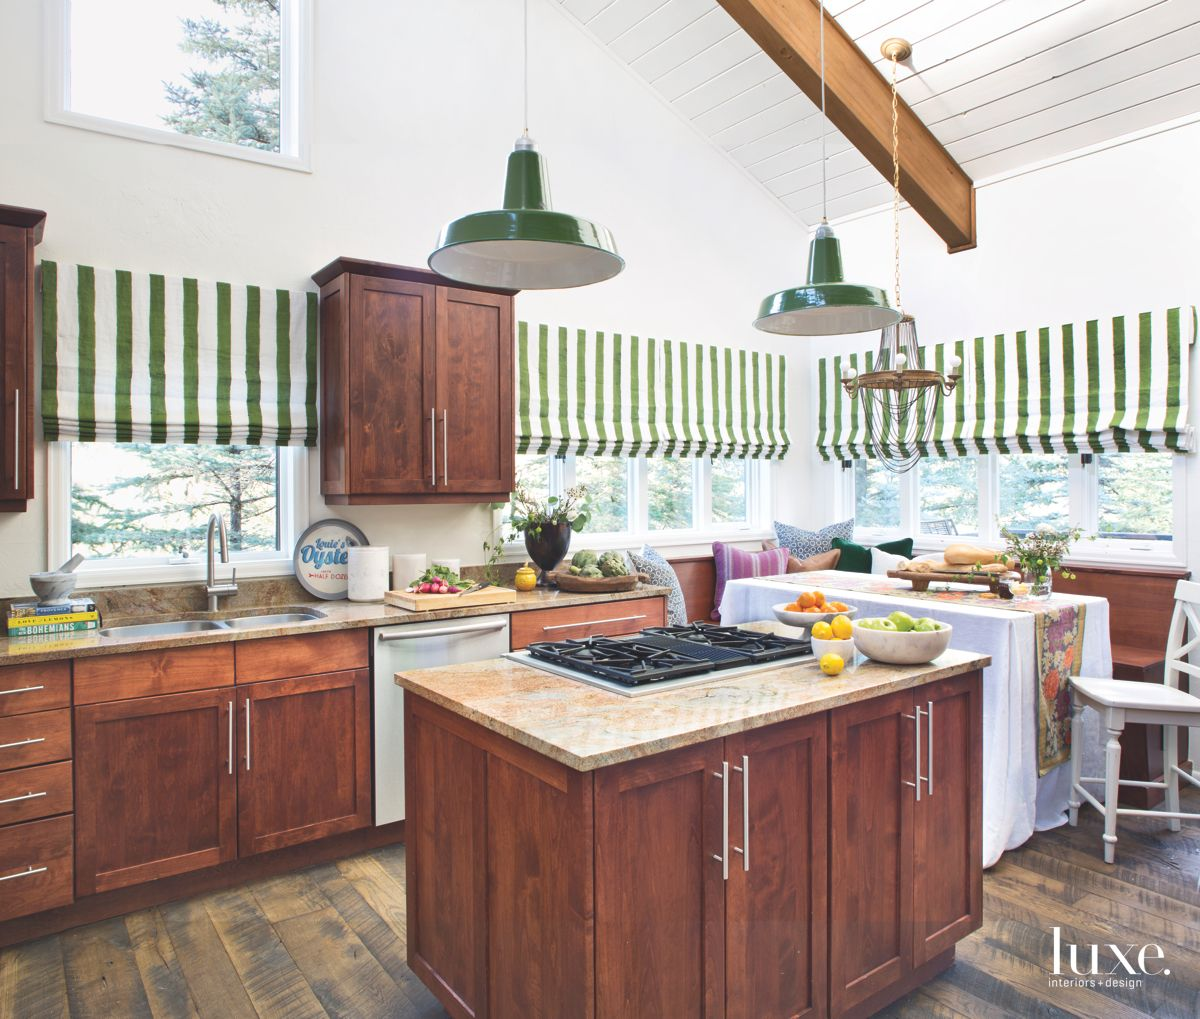 Green-Striped Enamel Shades Kitchen with French Midcentury Flair